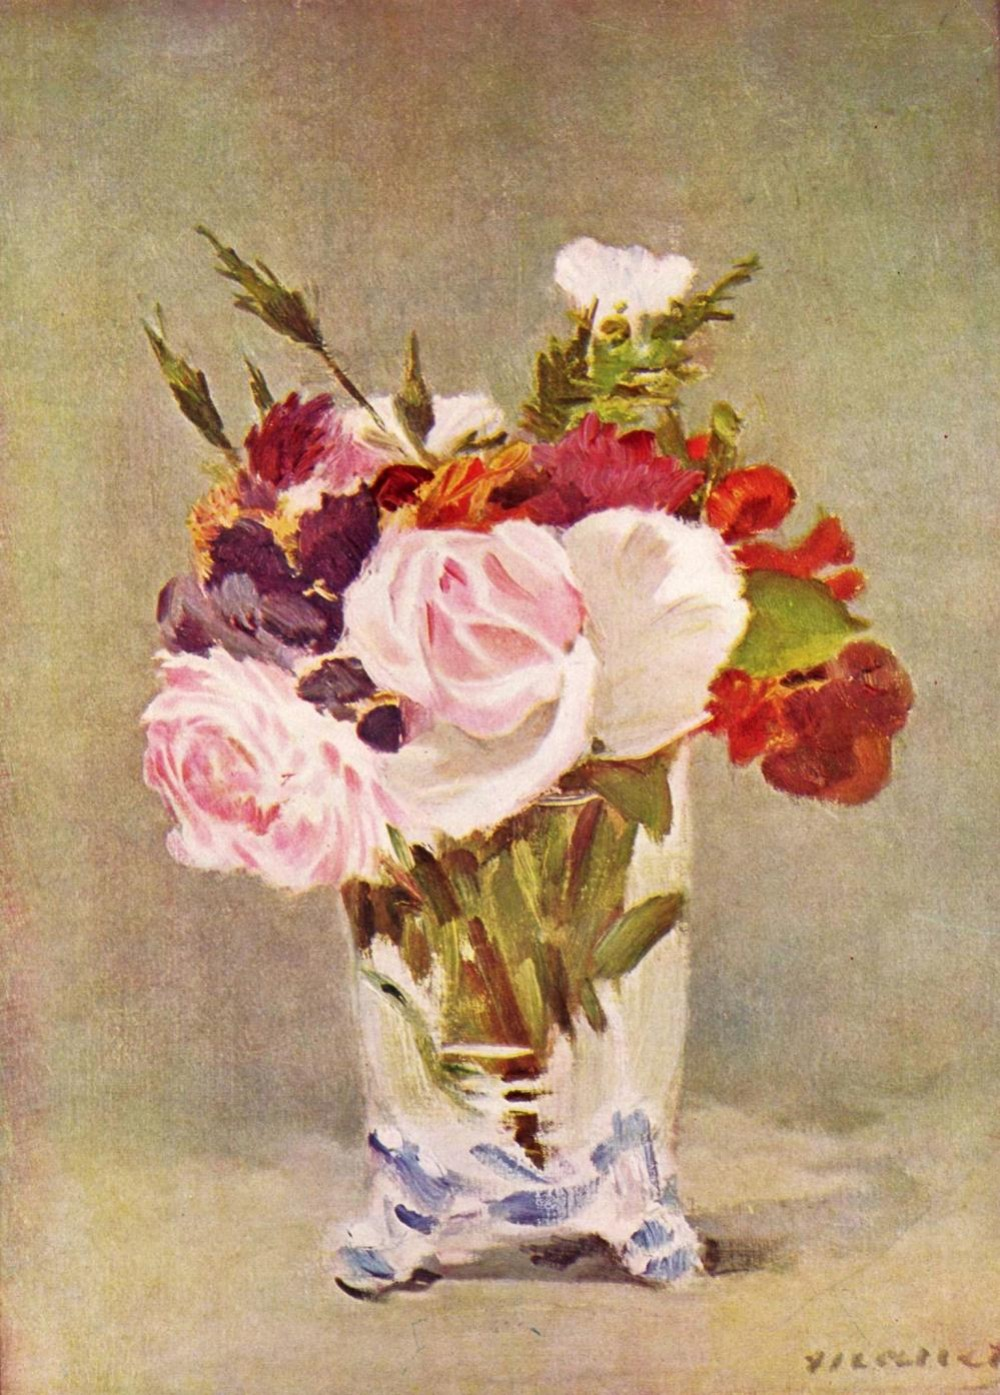 Édouard Manet. Roses, Carnartions, and Peonies. 1880